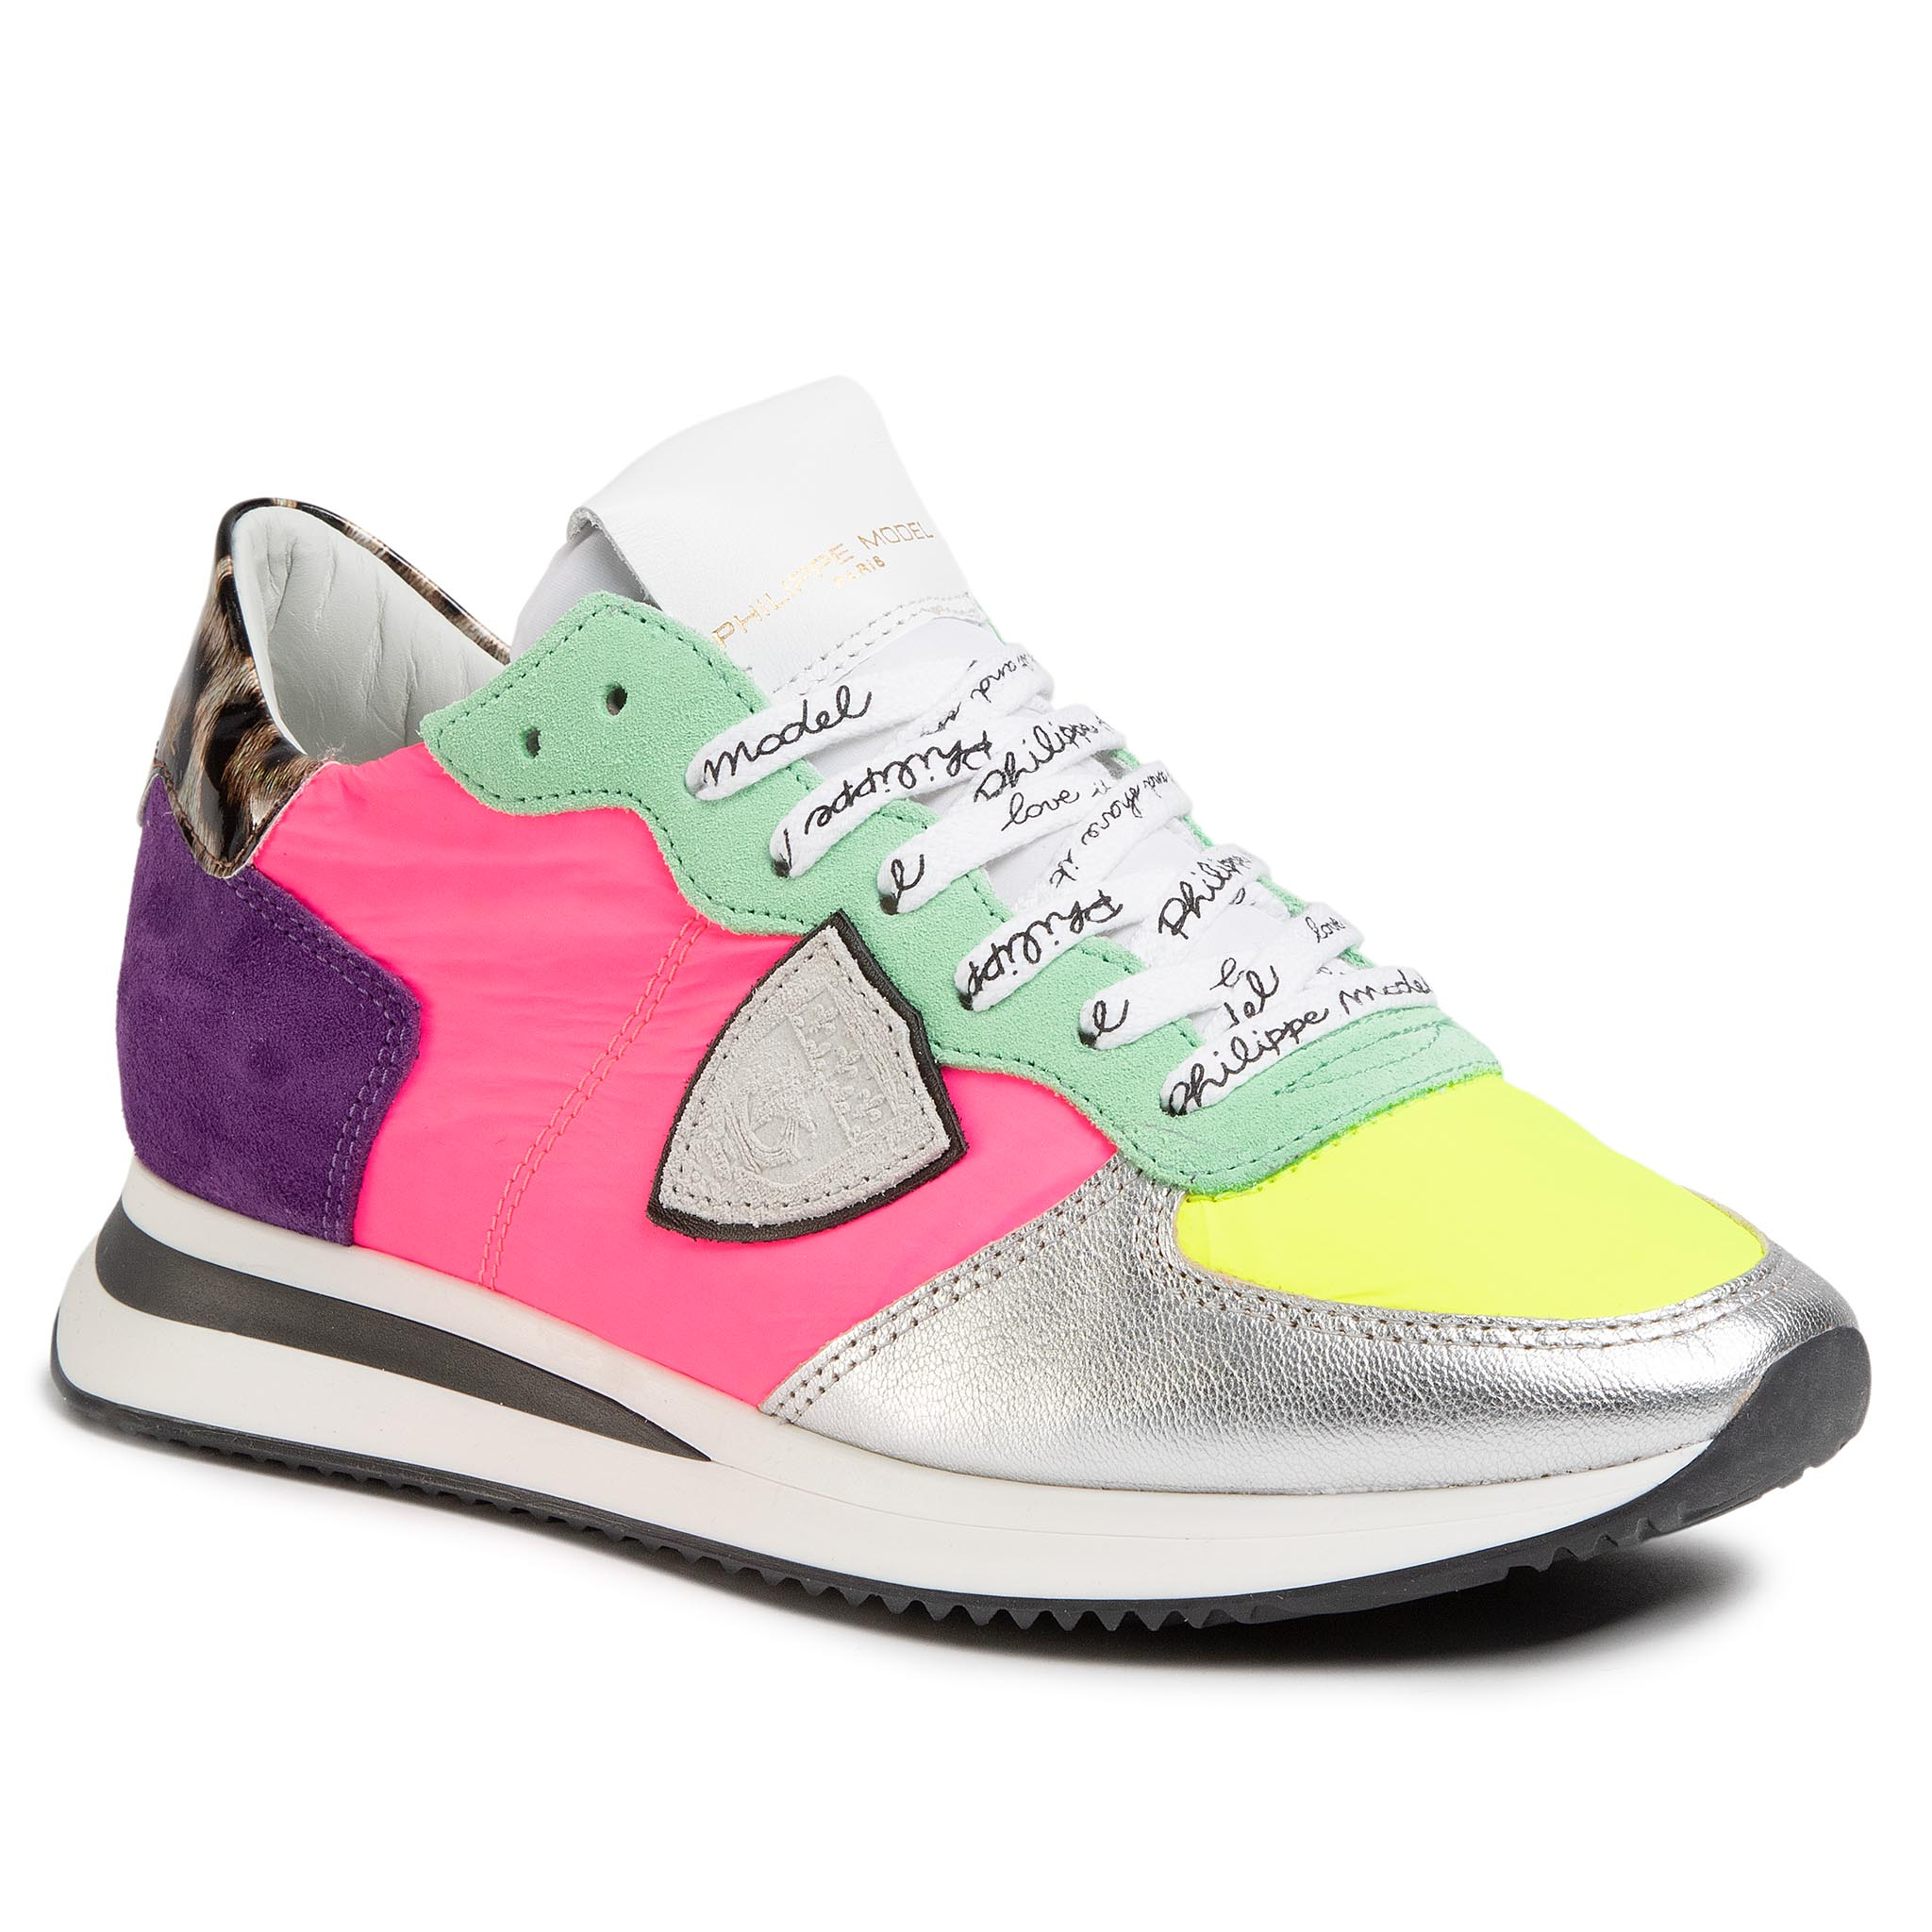 Sneakers PHILIPPE MODEL - Trpx TZLD RP09 Neon Pop Fucsia Argent